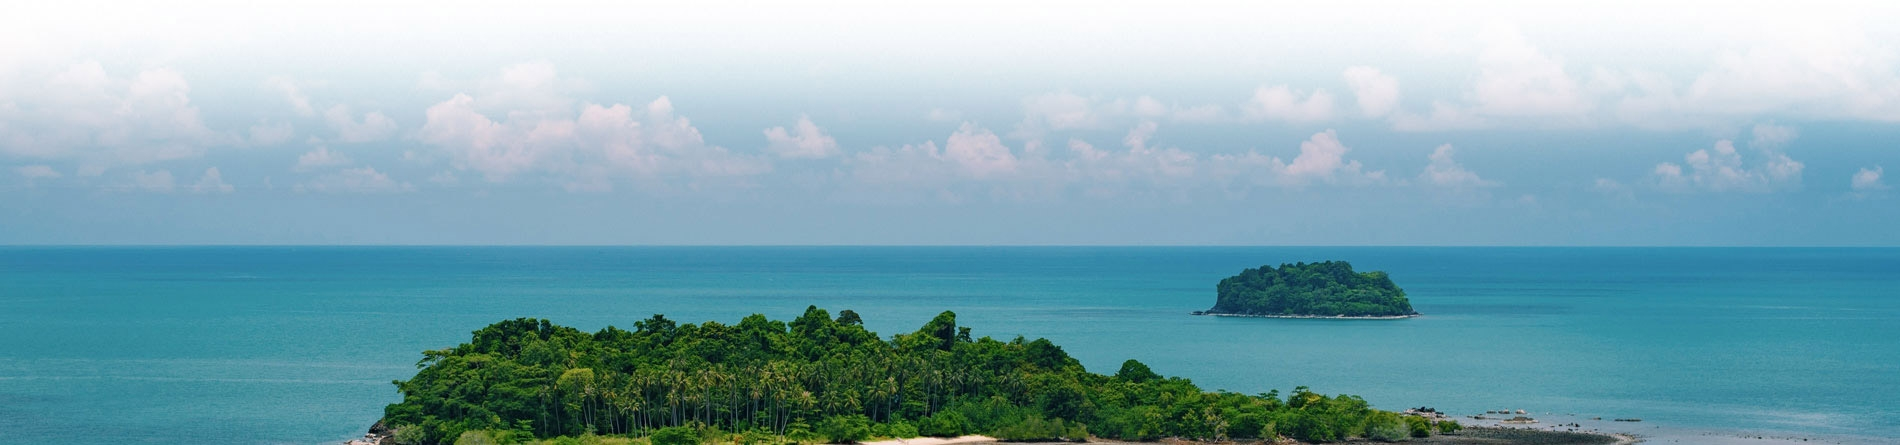 Beach Tour Package in Andaman Islands